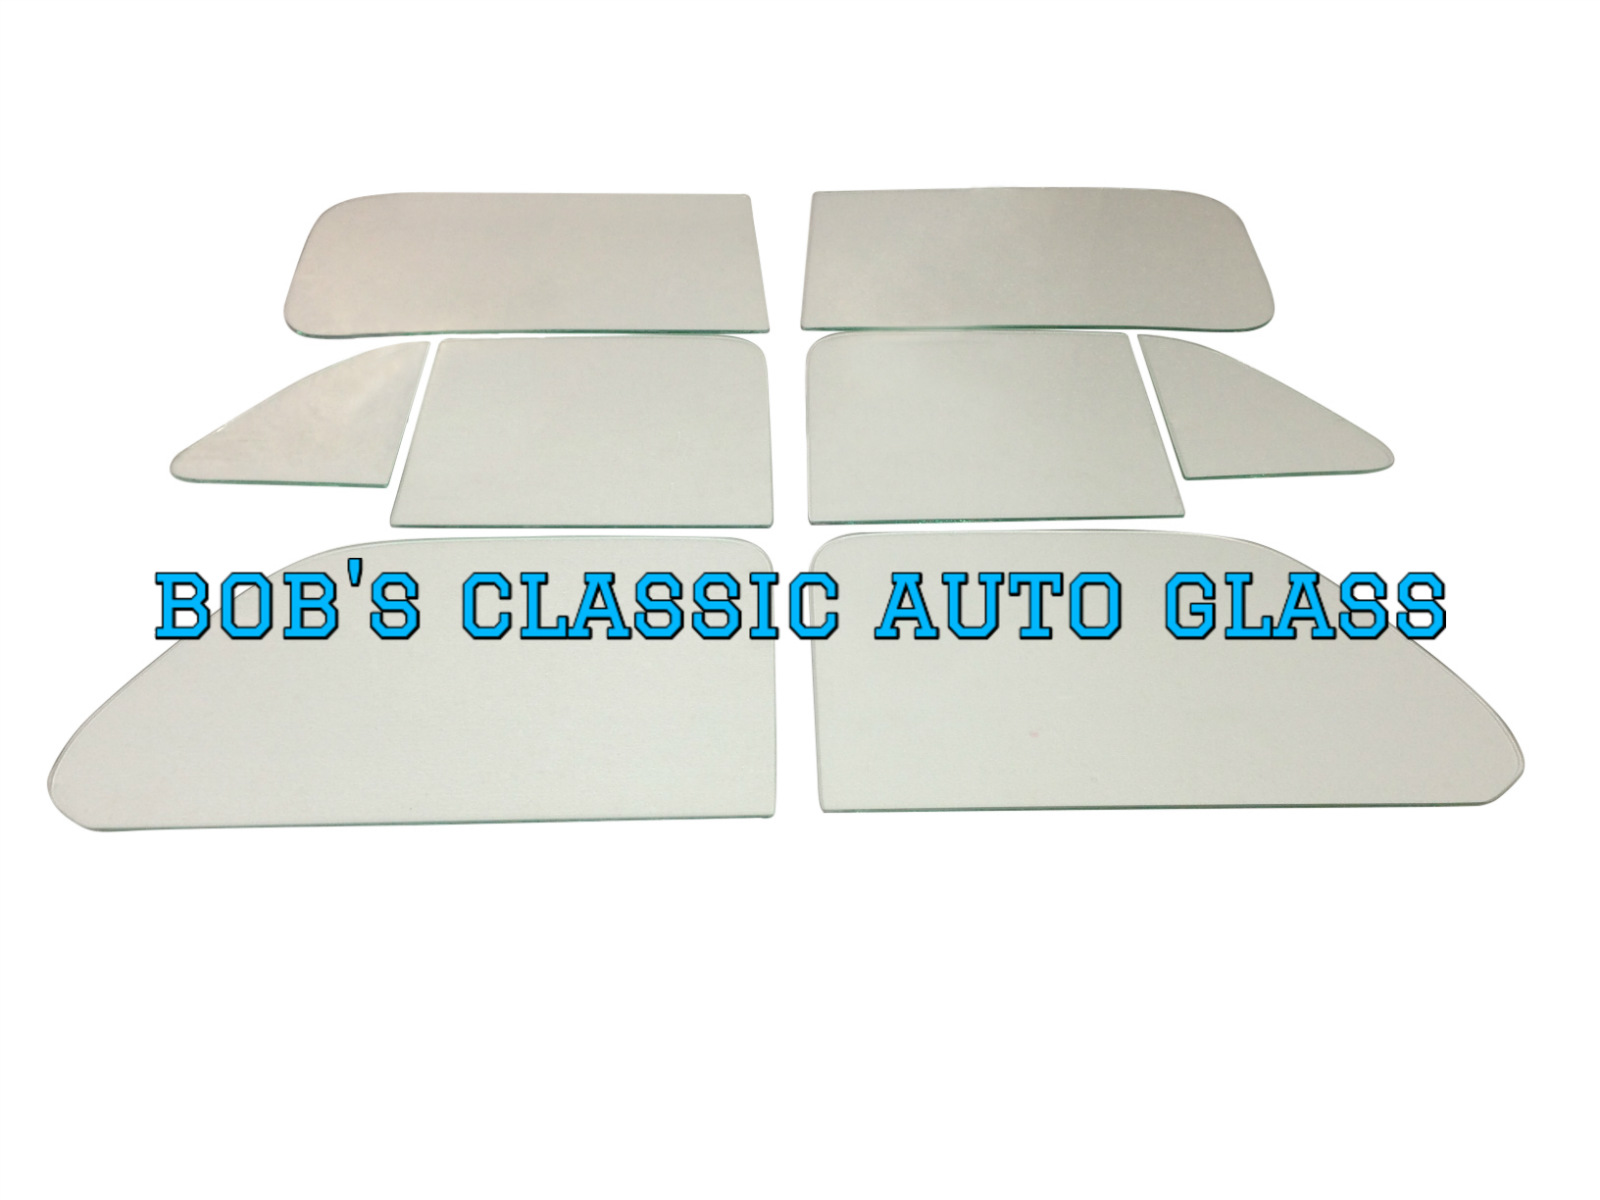 1947 Desoto Deluxe 2 Door Sedan Auto Glass Kit NEW